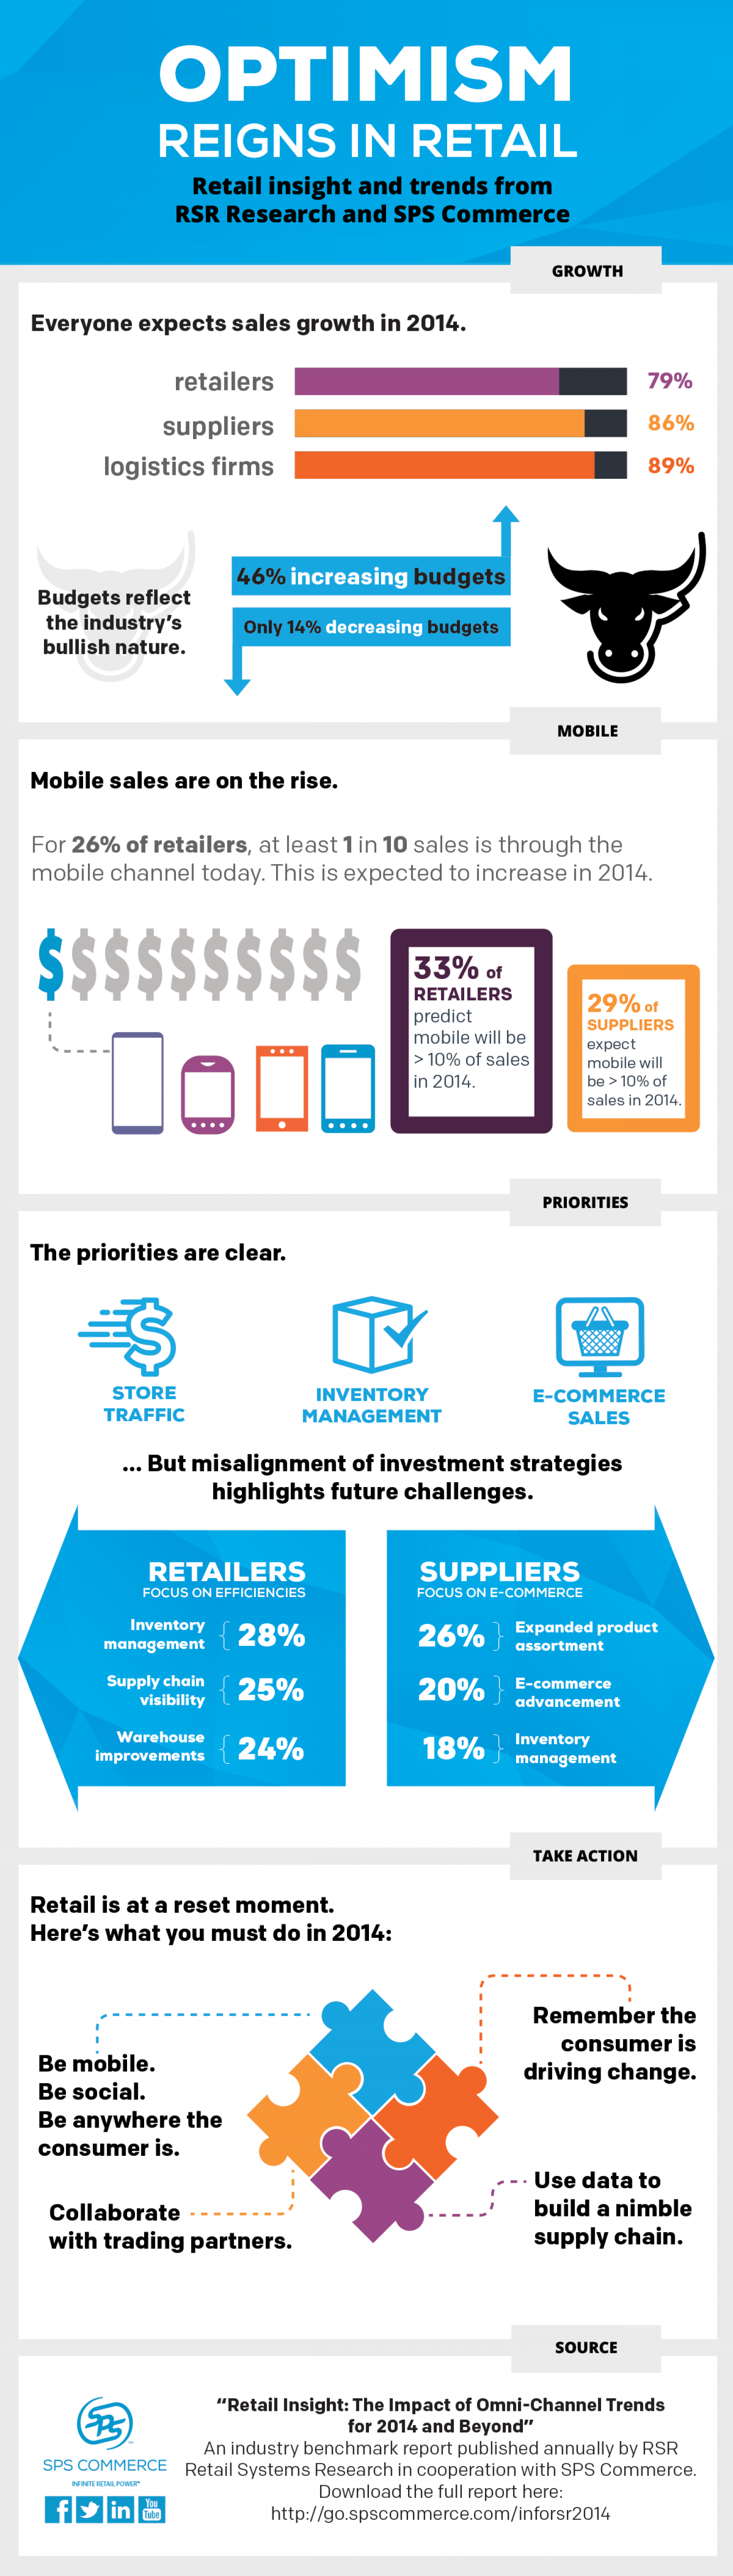 Optimism Reigns in Retail Infographic